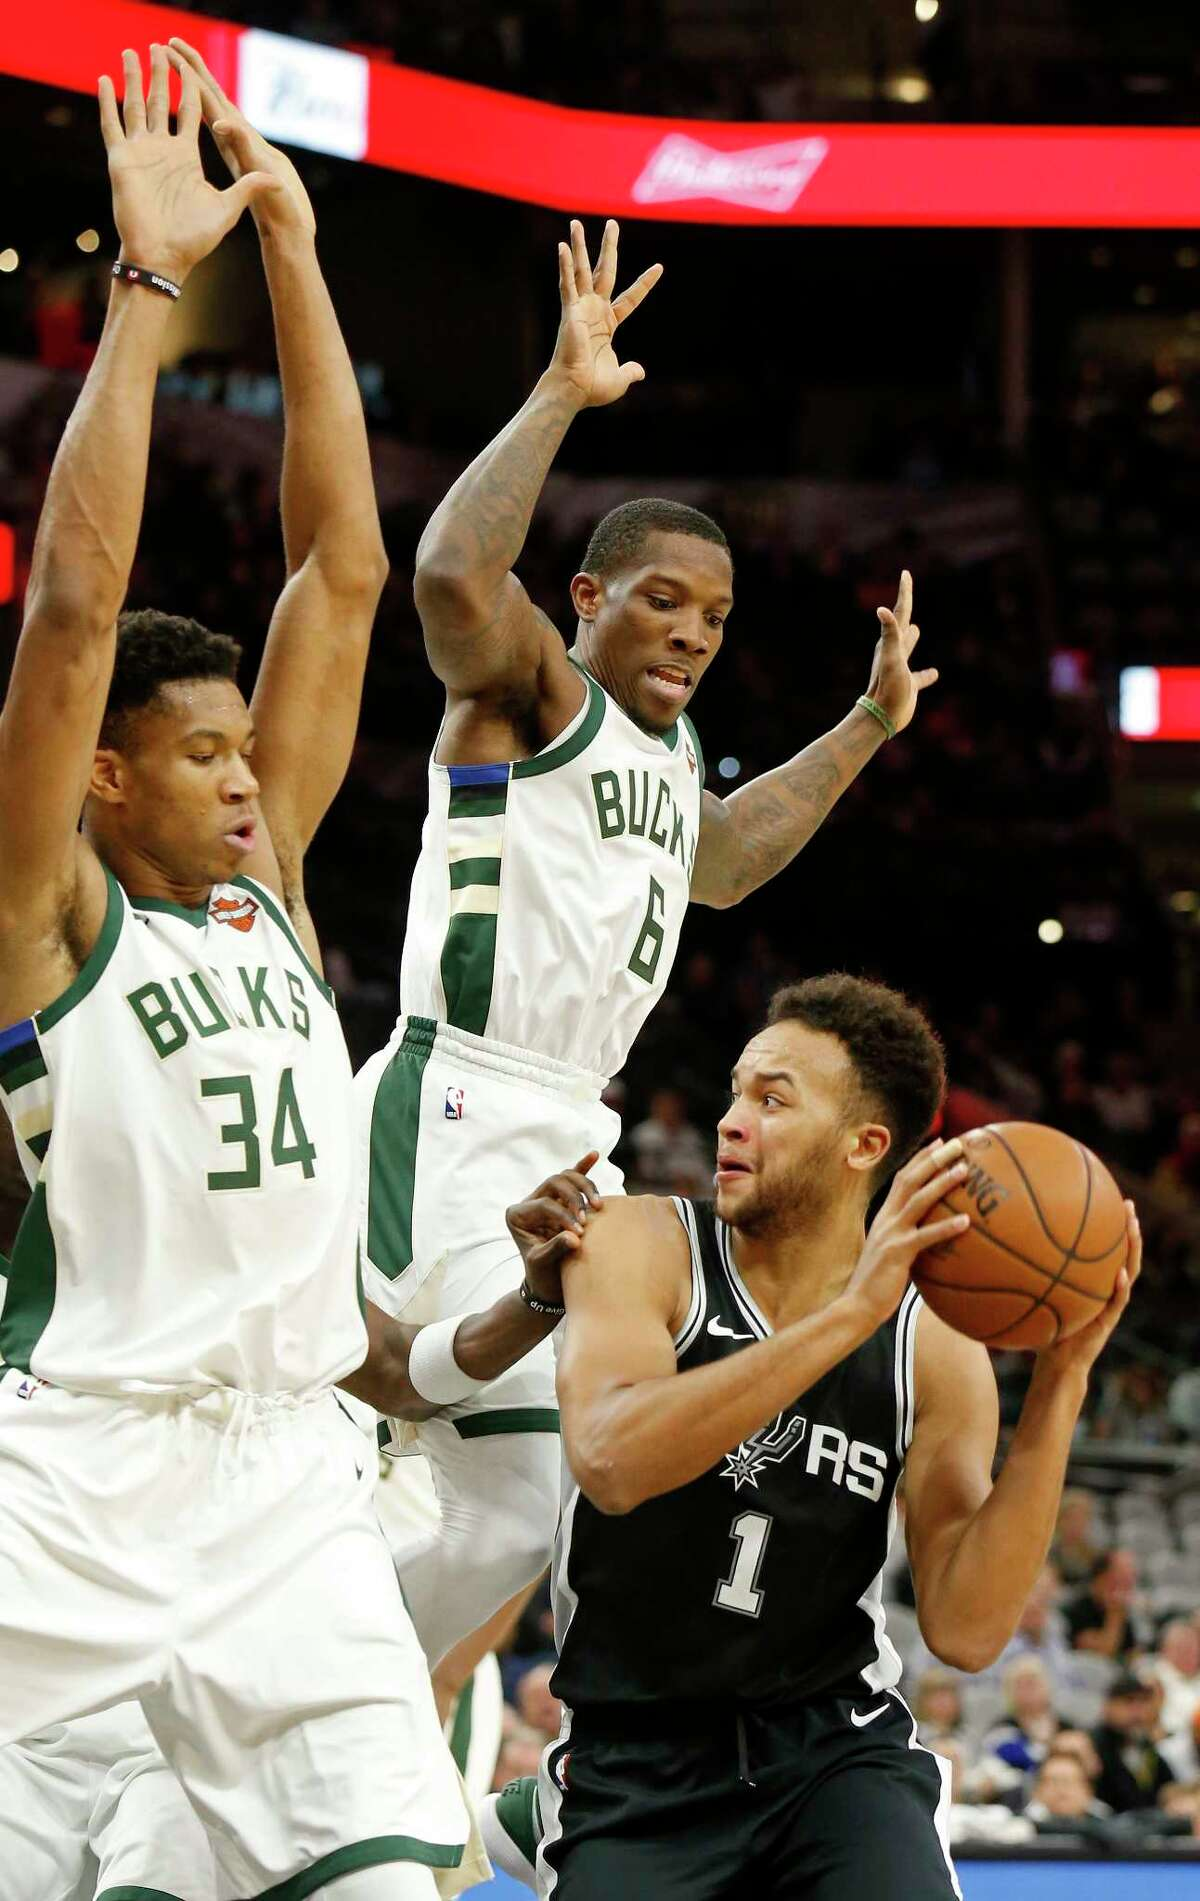 San Antonio Spurs Kyle Anderson looks for room around Milwaukee Bucks Giannis Antetokounmpo (left) and Eric Bledsoe during first half action Friday Nov. 10, 2017 at the AT&T Center.